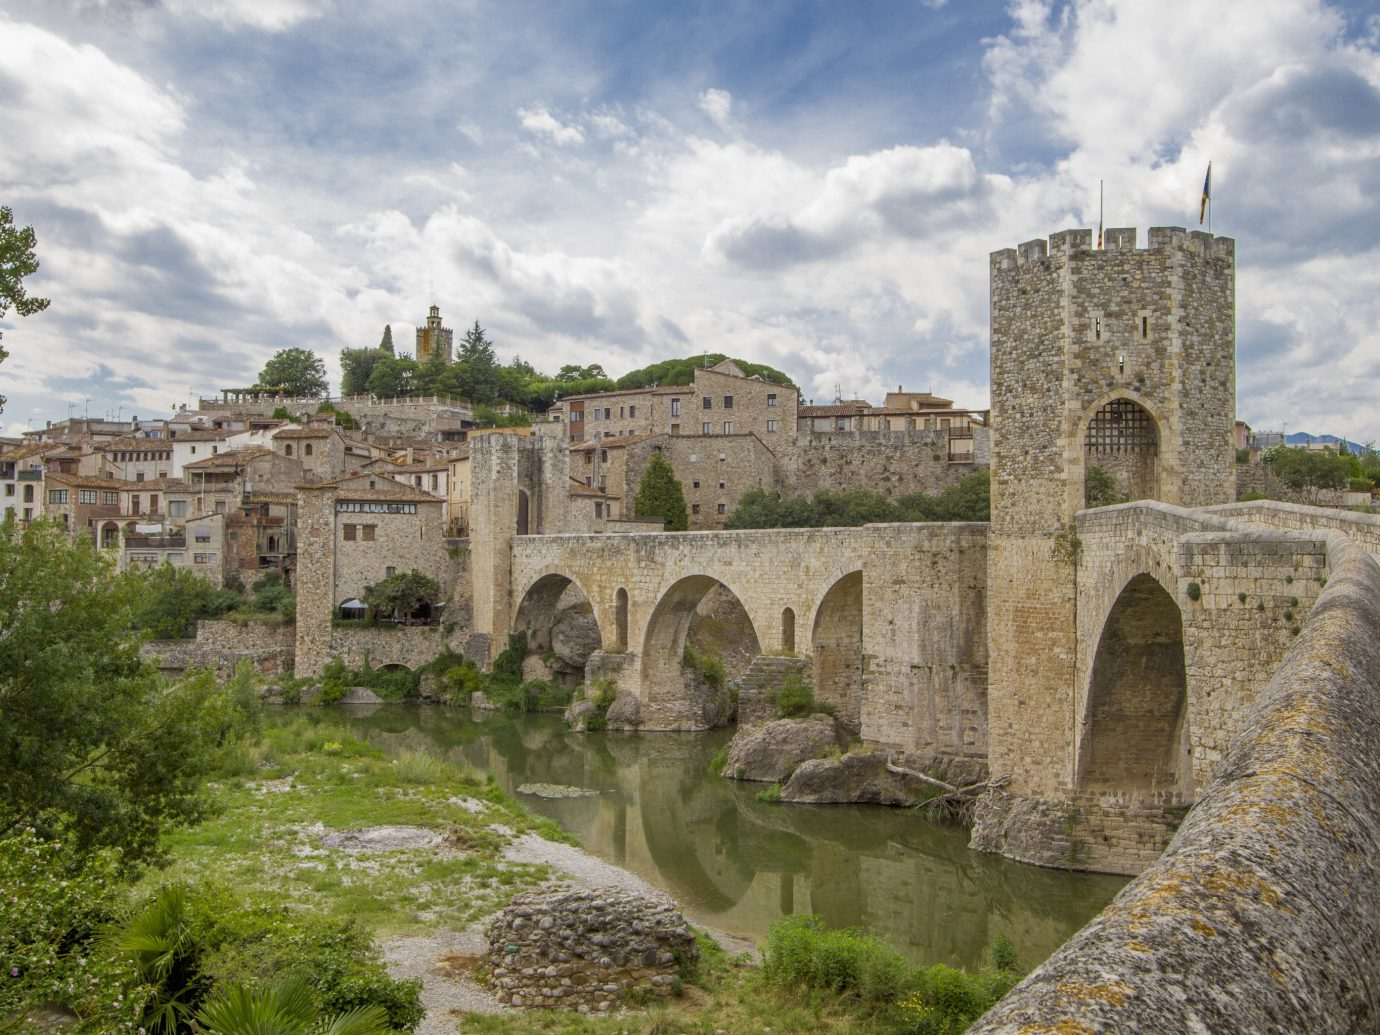 europe Spain Trip Ideas sky fortification history bridge ancient history historic site devil's bridge Ruins Village medieval architecture archaeological site tree castle River middle ages moat aqueduct water tours watercourse